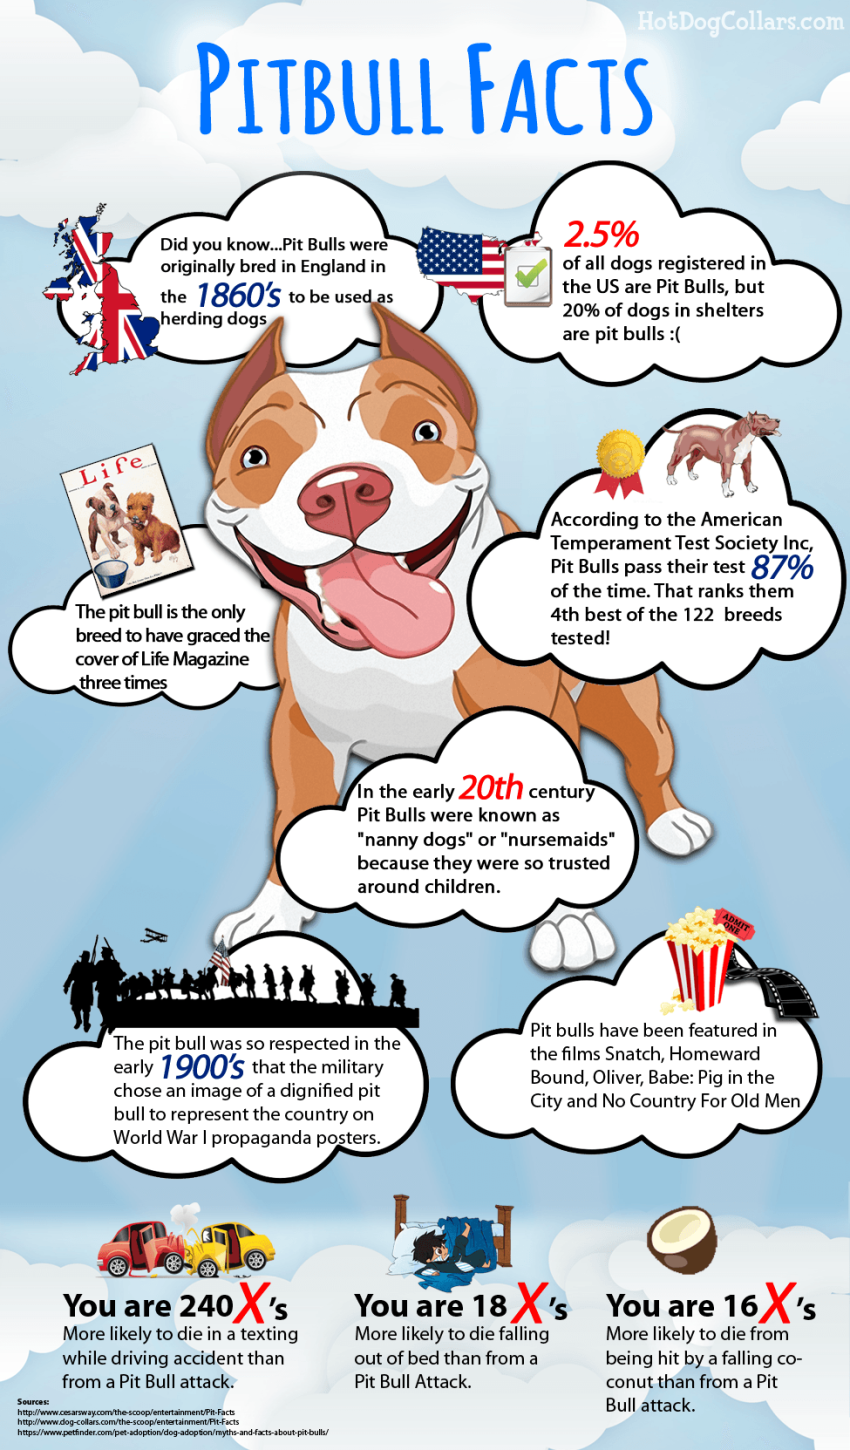 pitbull facts; pitbull myths; pitbull advocate